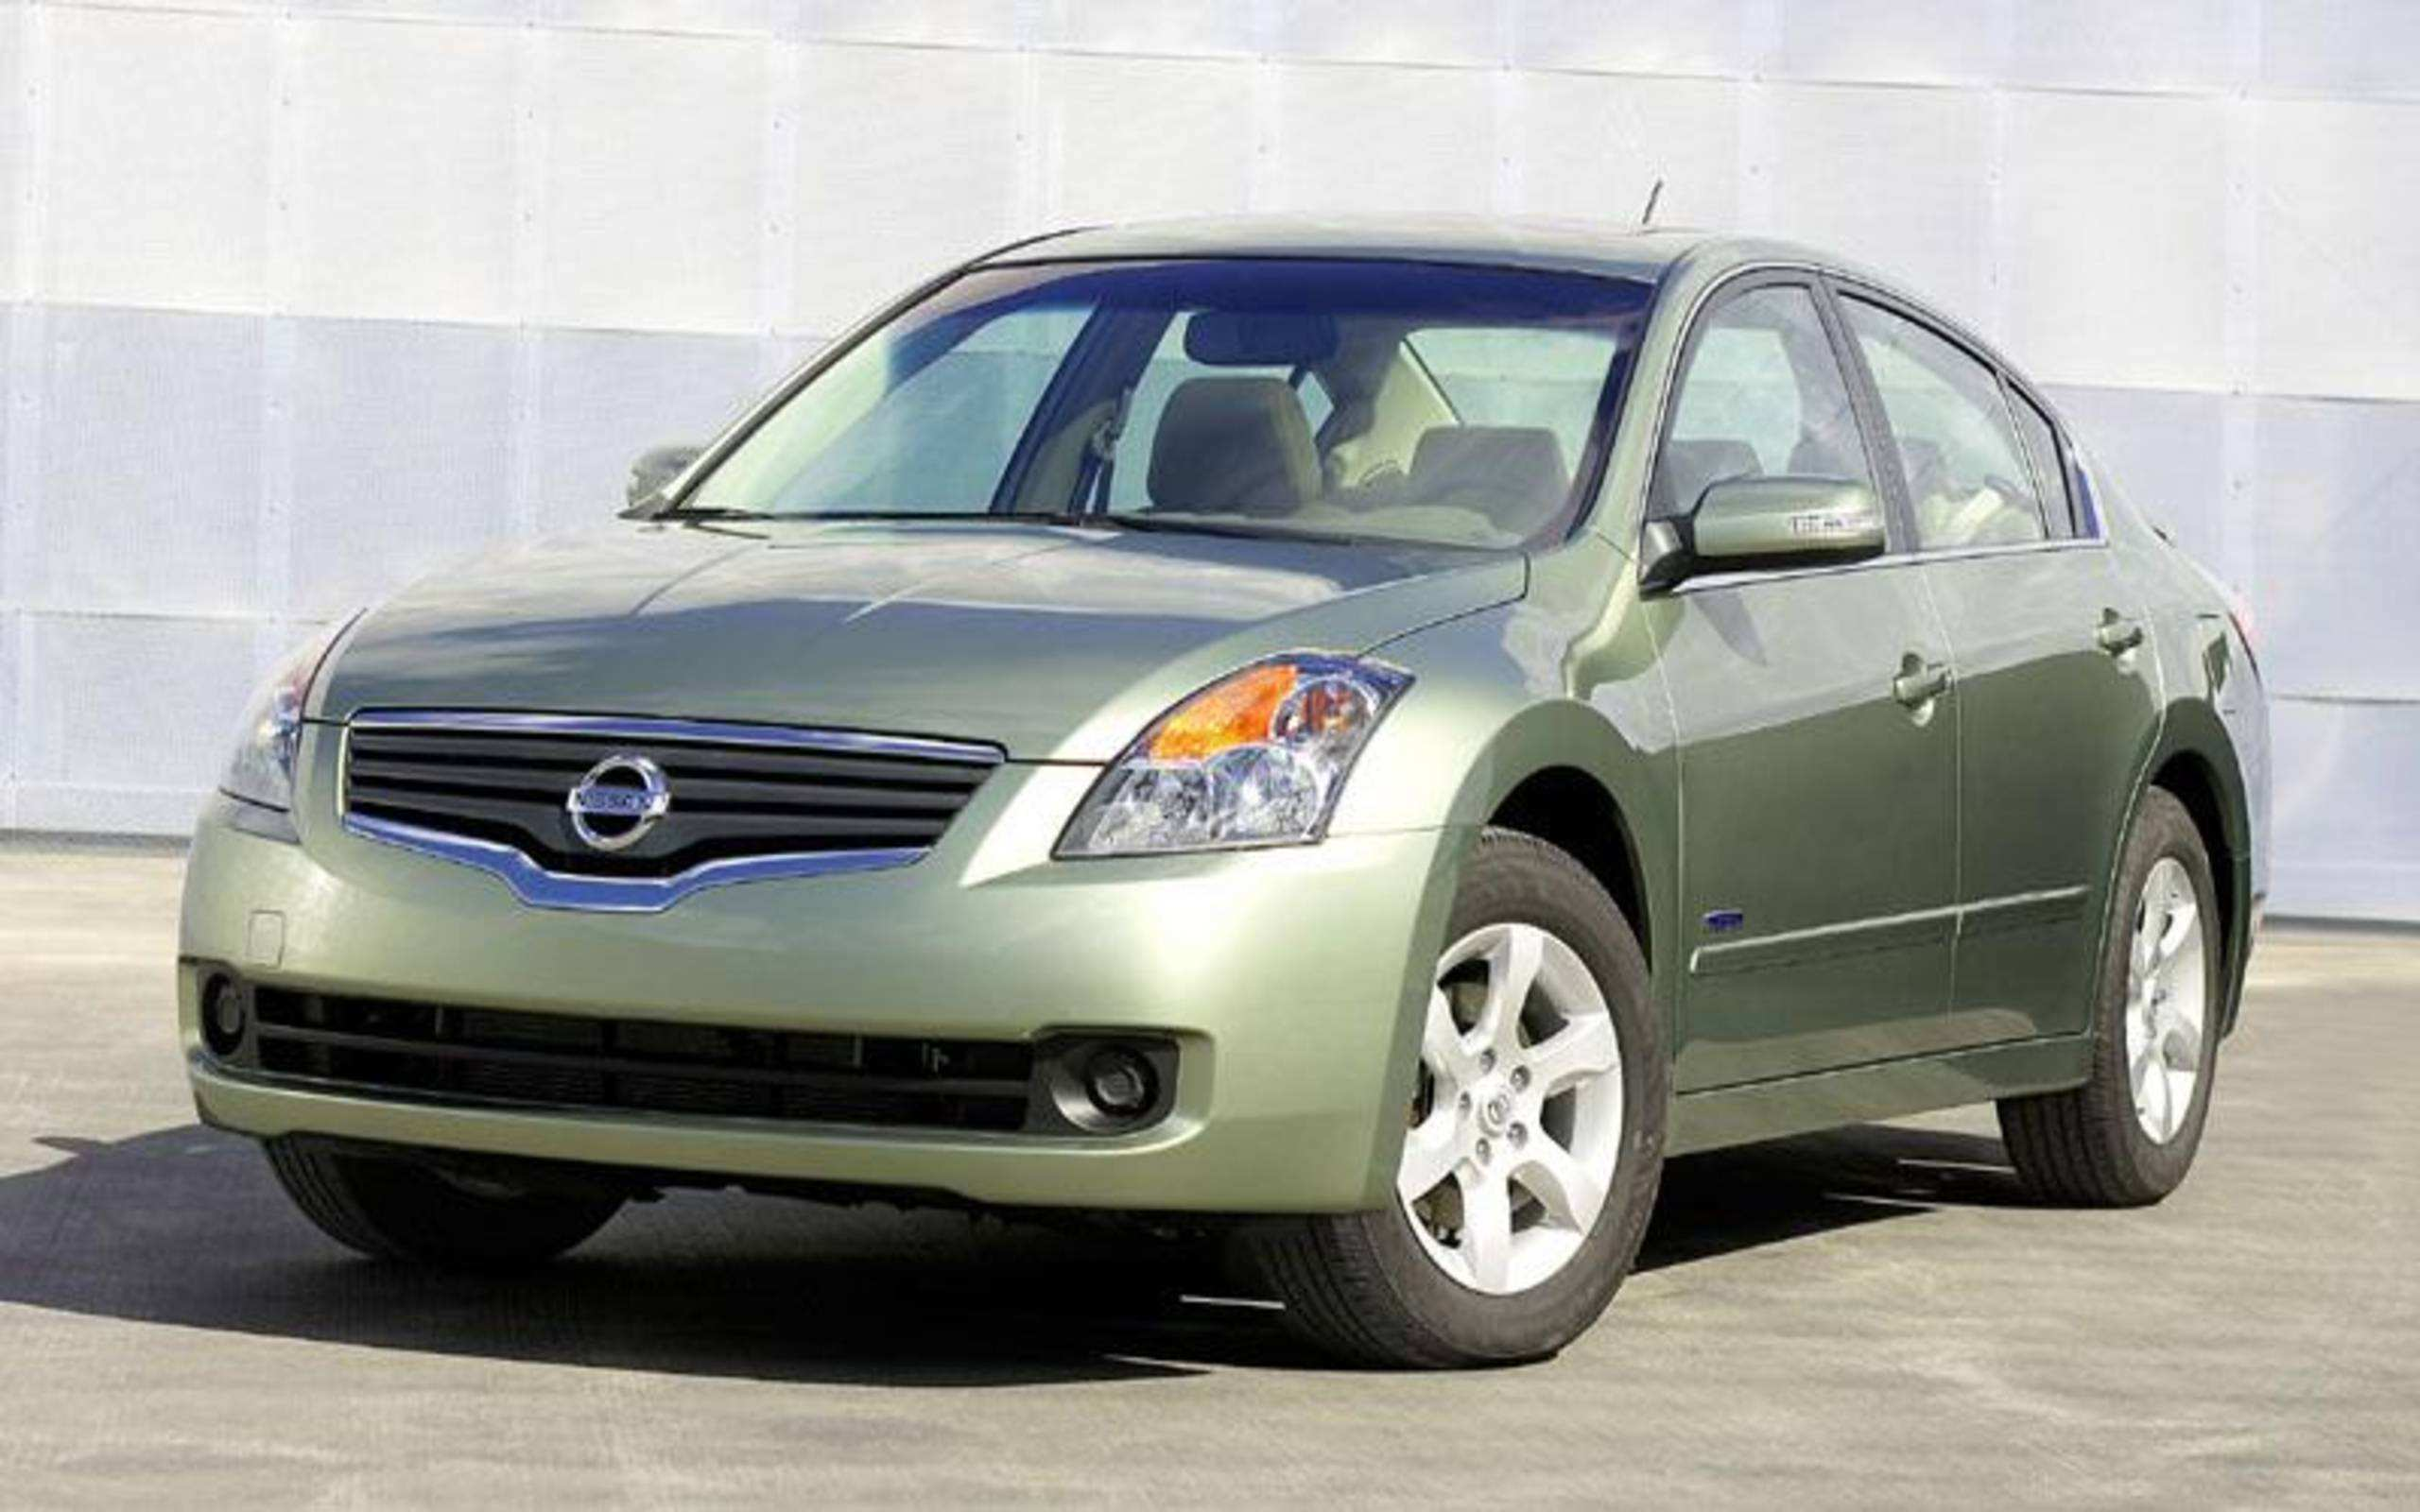 53 All New 2007 Nissan Altima Hybrid Performance And New Engine